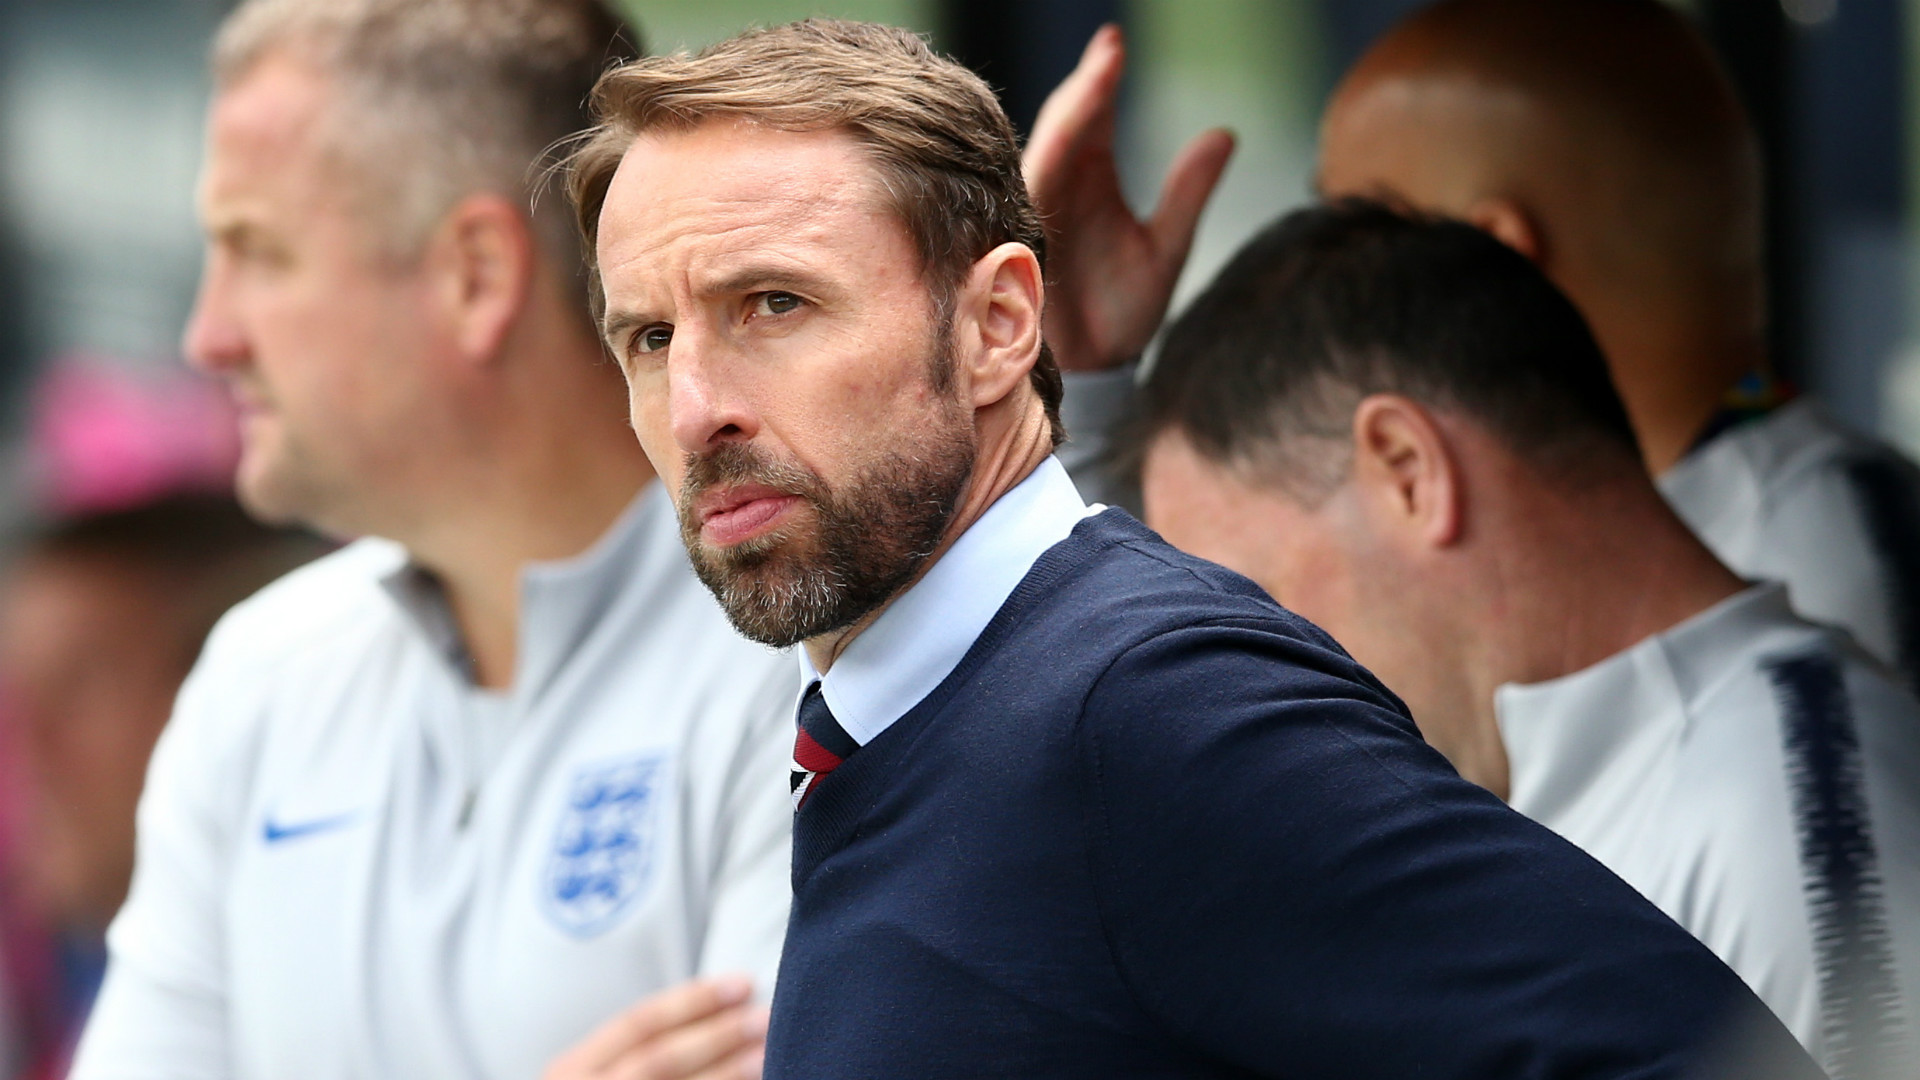 'Groundless, inappropriate and unnecessary' - Bulgarian Football Union hits back at Southgate over racism claims